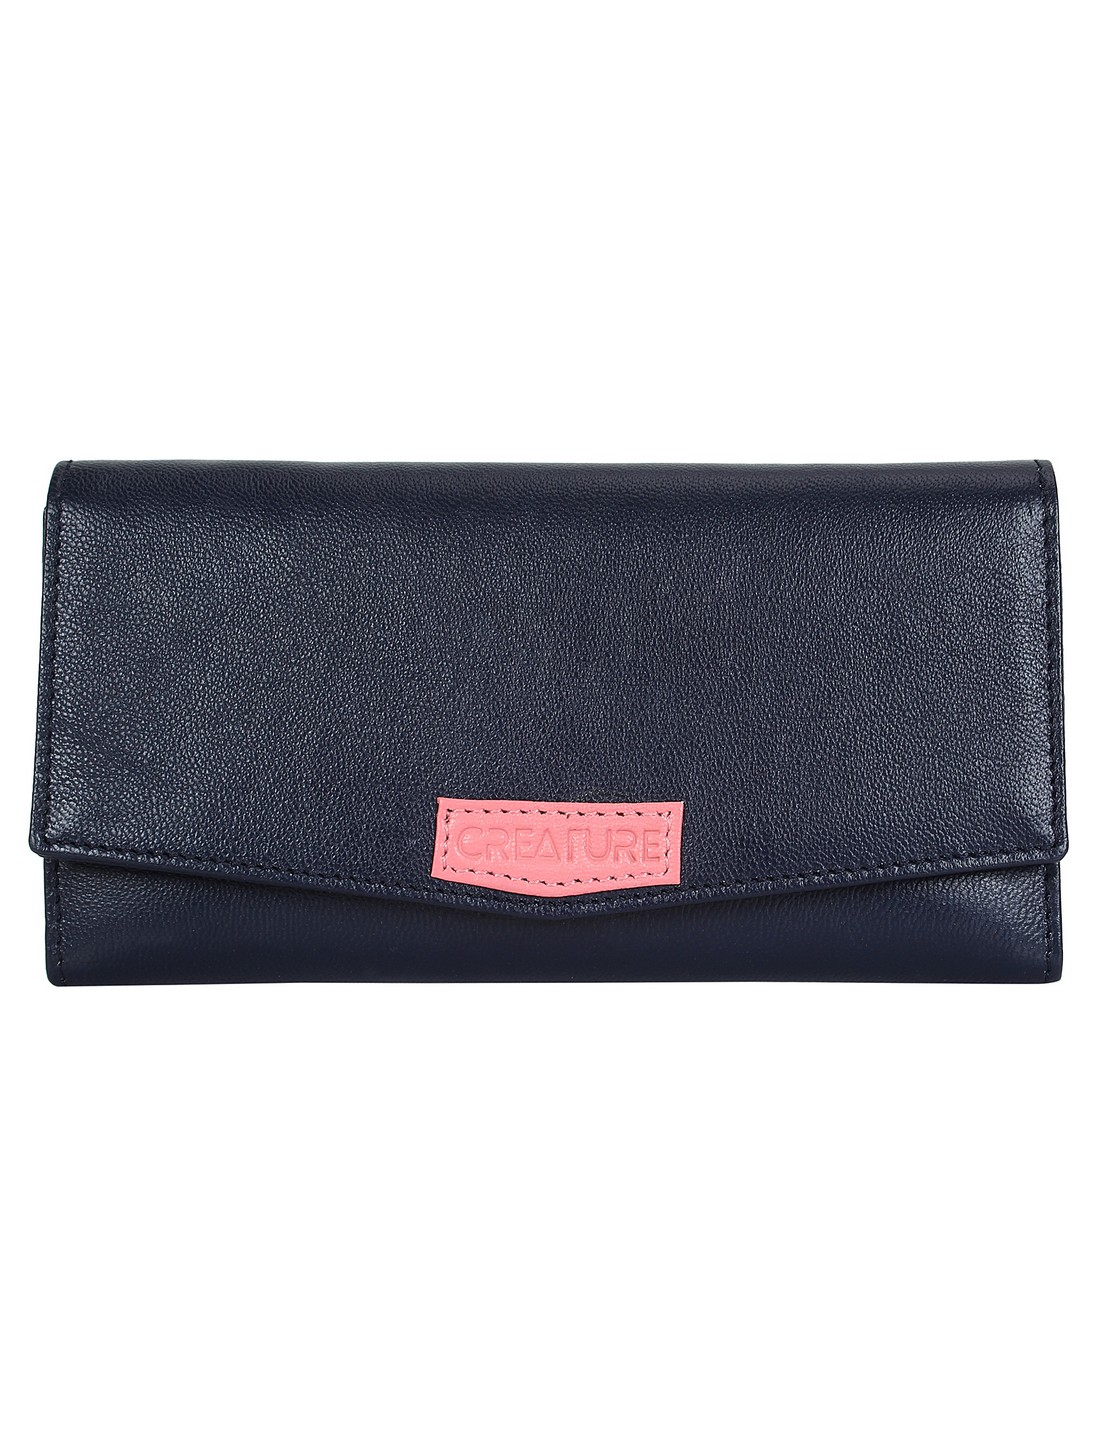 CREATURE | CREATURE Blue Stylish Genuine Leather Clutch for Women